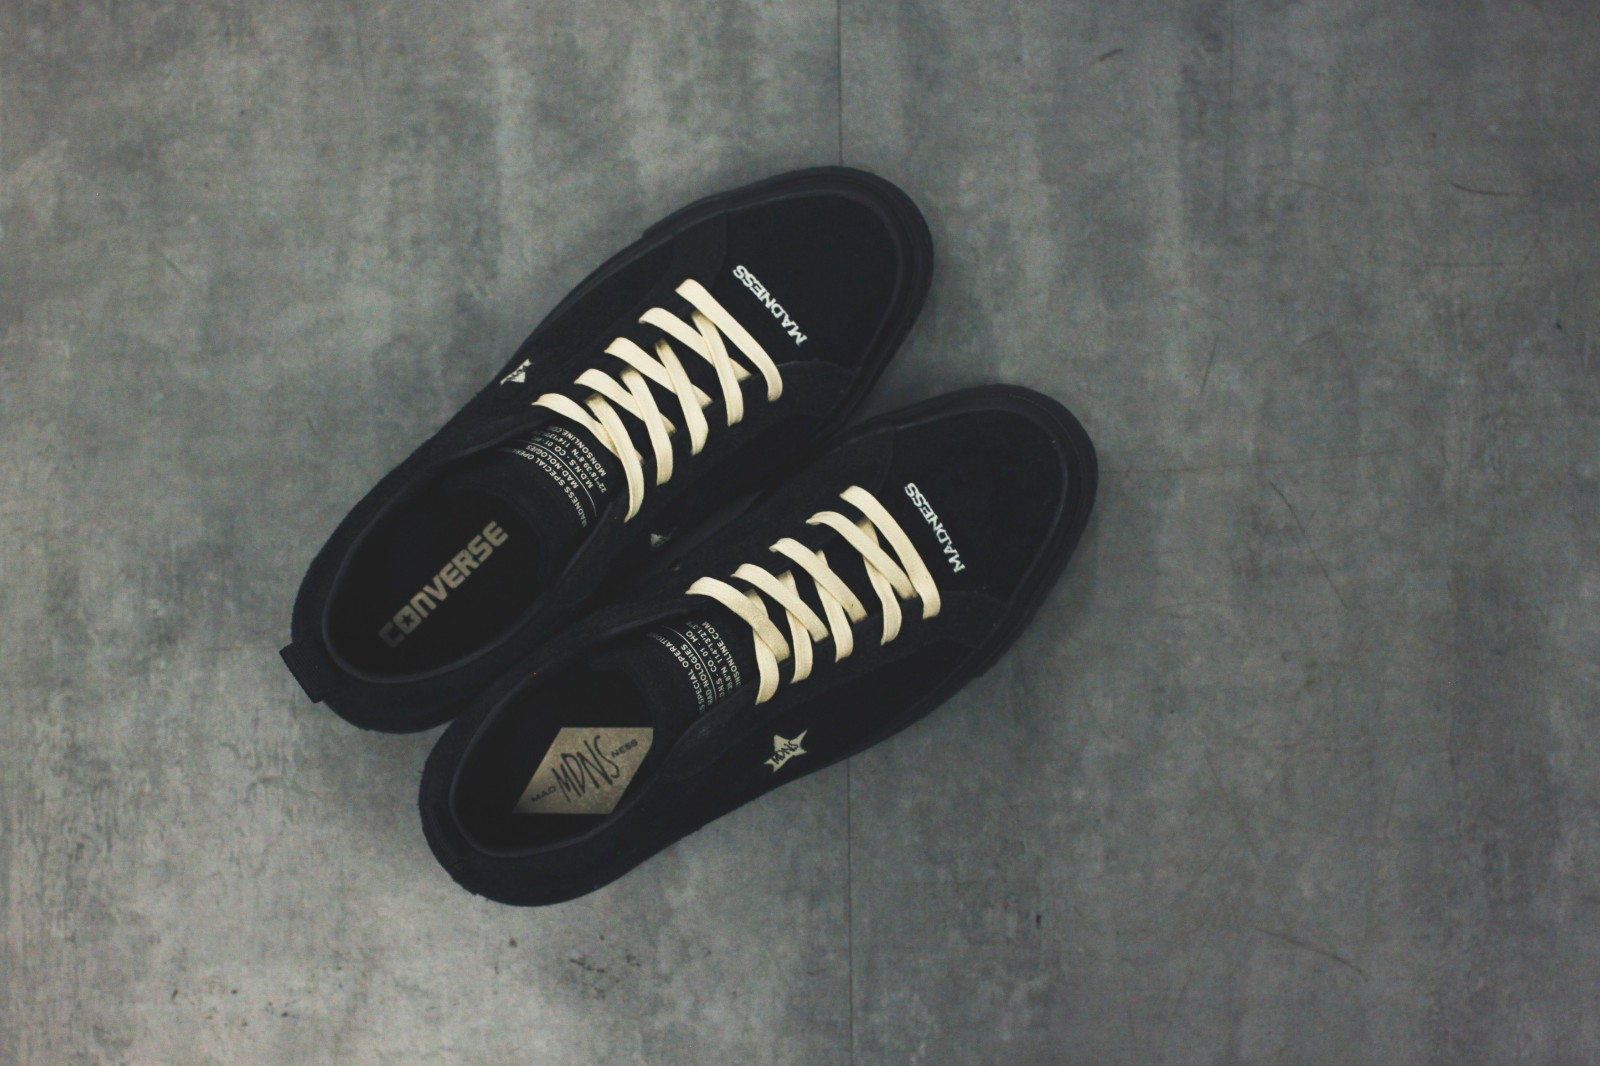 2c88df08bbe Converse MDNS X Converse One Star Size 10 - Low-Top Sneakers for ...